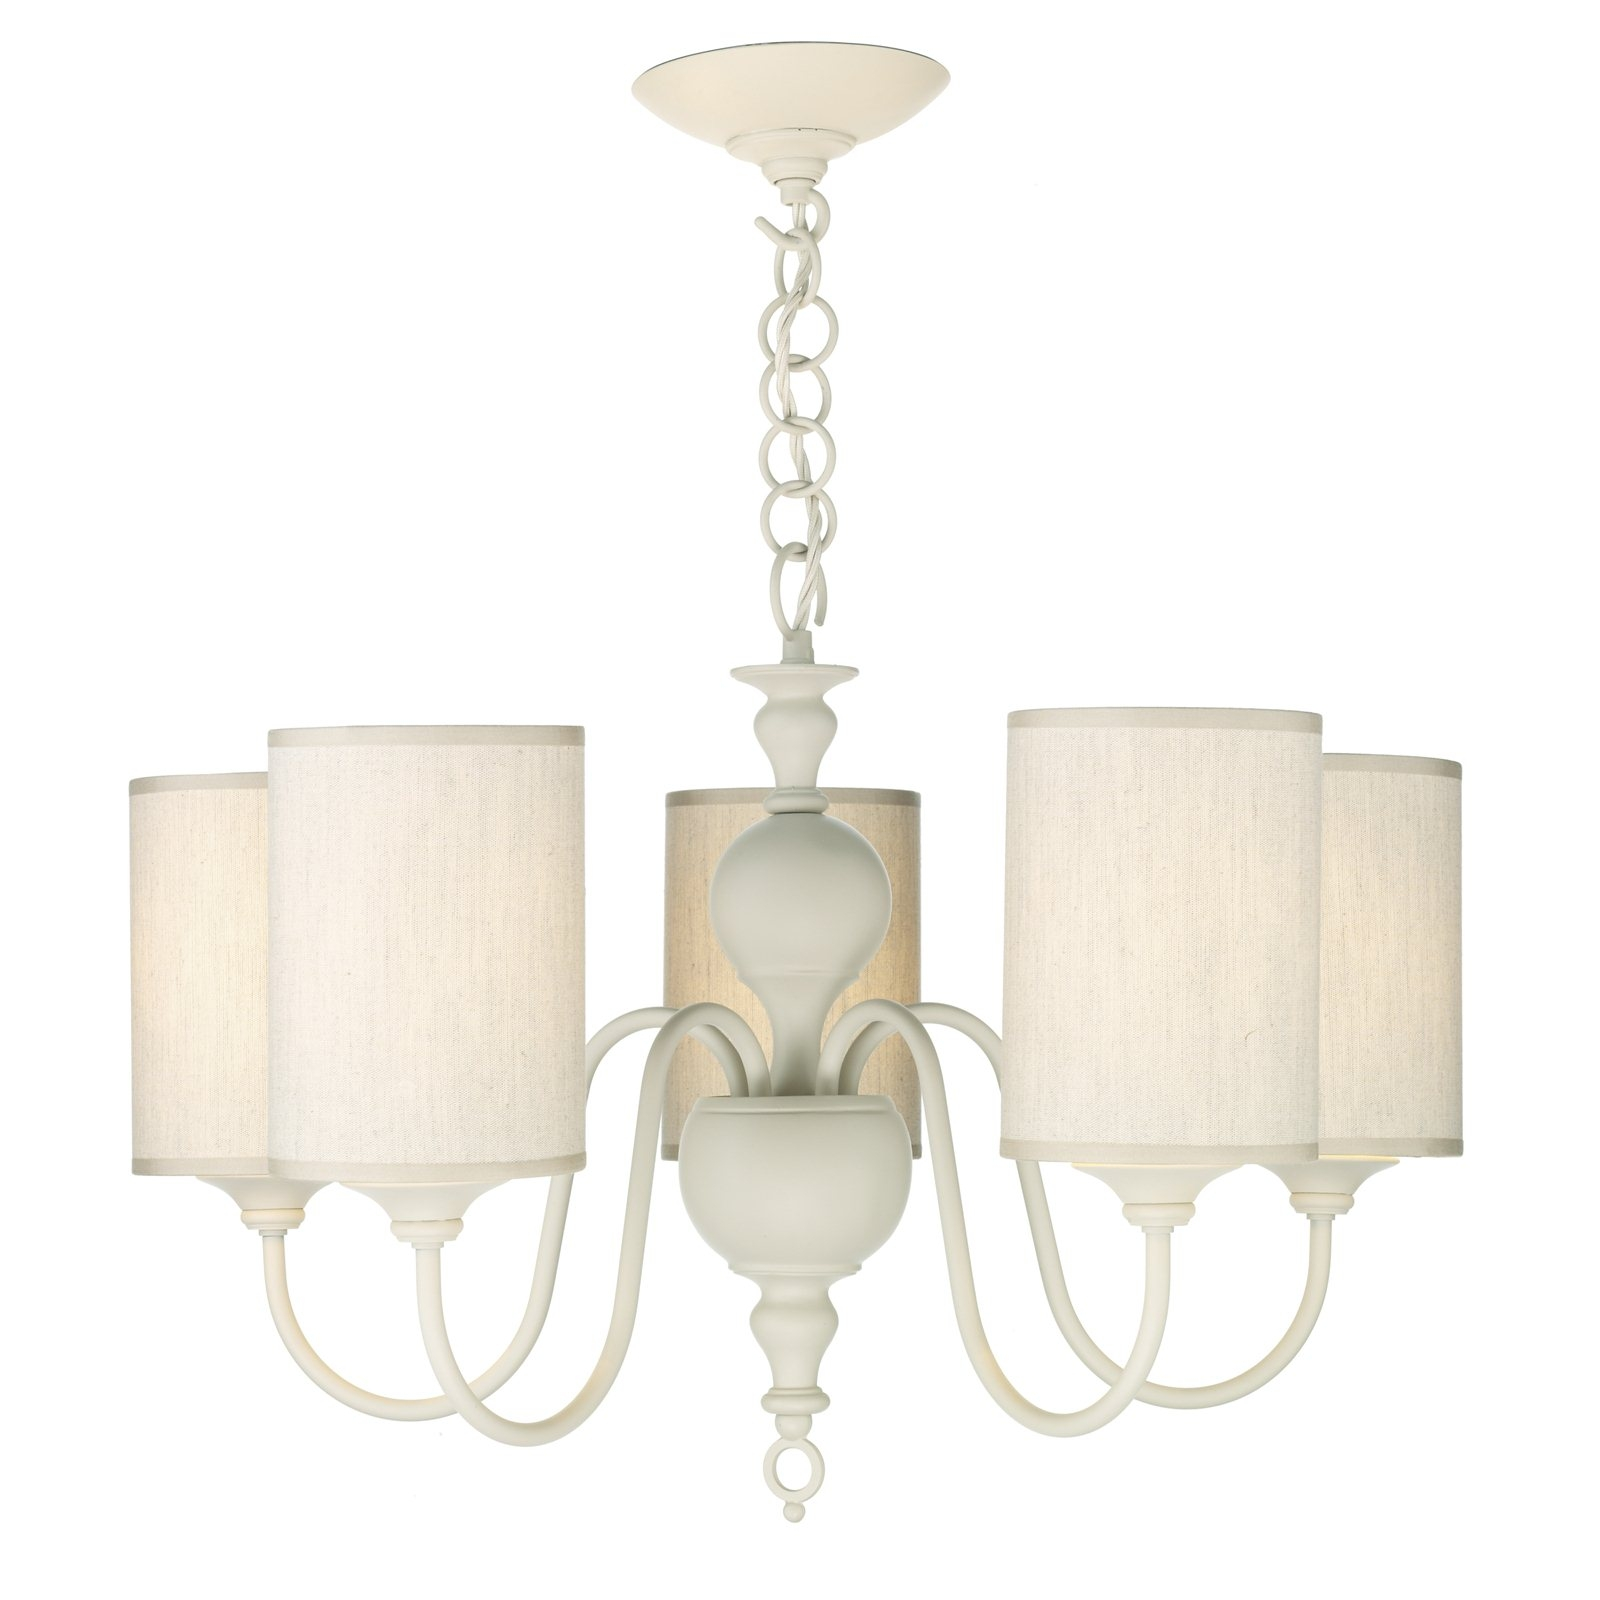 Hicks And Hicks Vintage Cream 5 Light Chandelier Hicks Hicks Within Cream Chandelier Lights (#8 of 12)